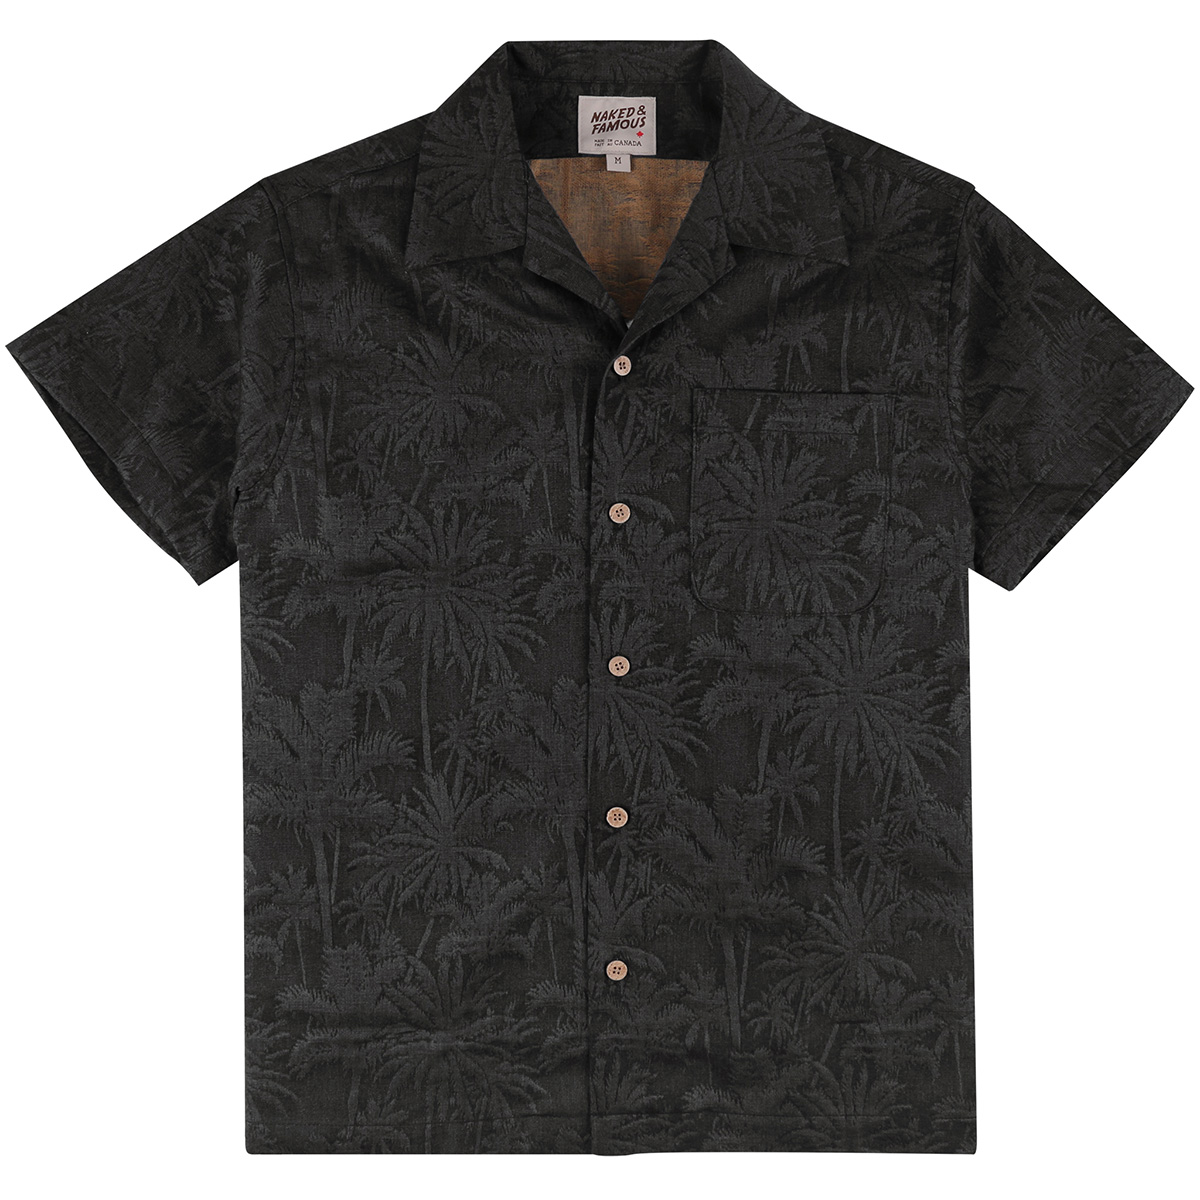 DOUBLE JACQUARD TROPICAL - BLACK - Aloha Shirt